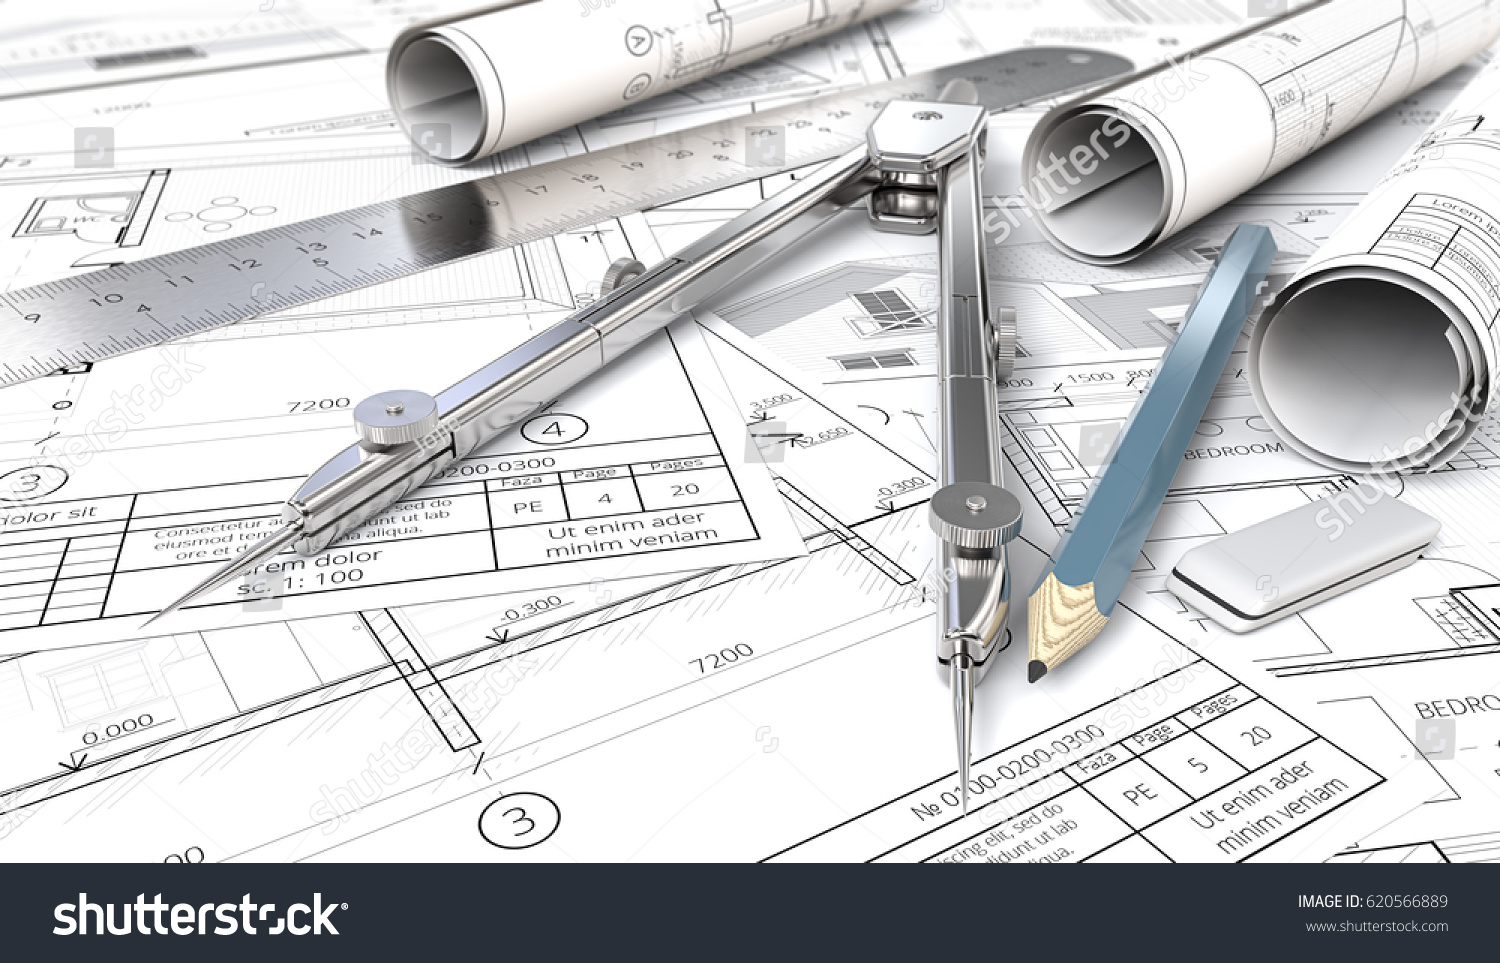 Sketch Blueprint Architectural House Blueprints Drawings Stock ...